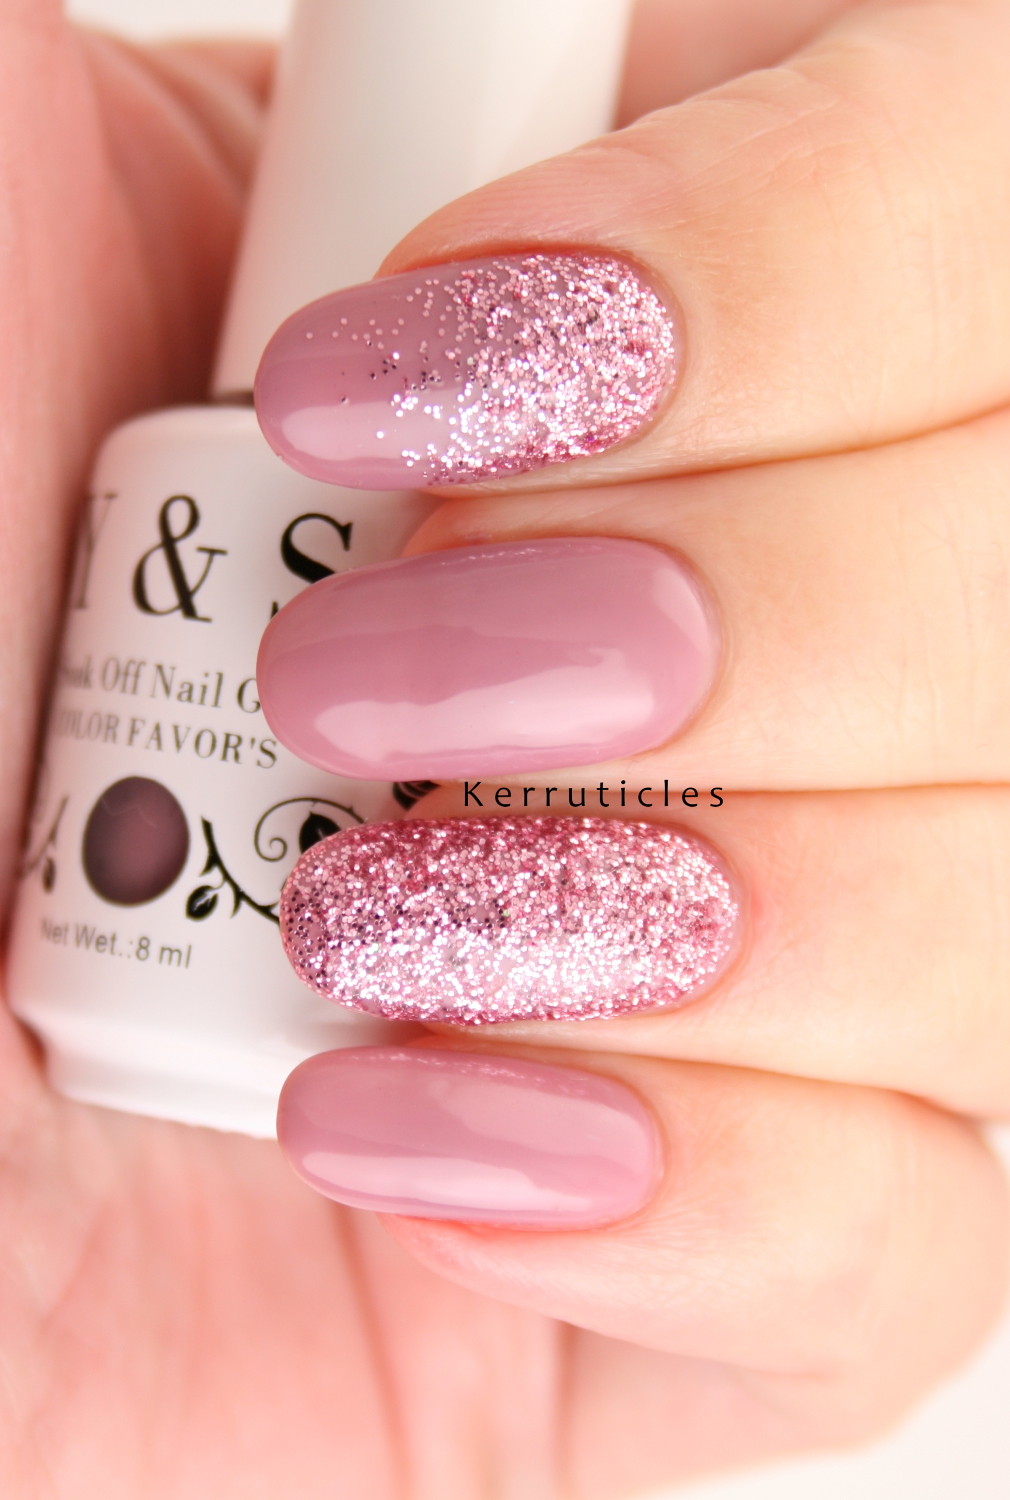 Kerruticles Claire Kerr S Uk Nails Blog Nail Polish